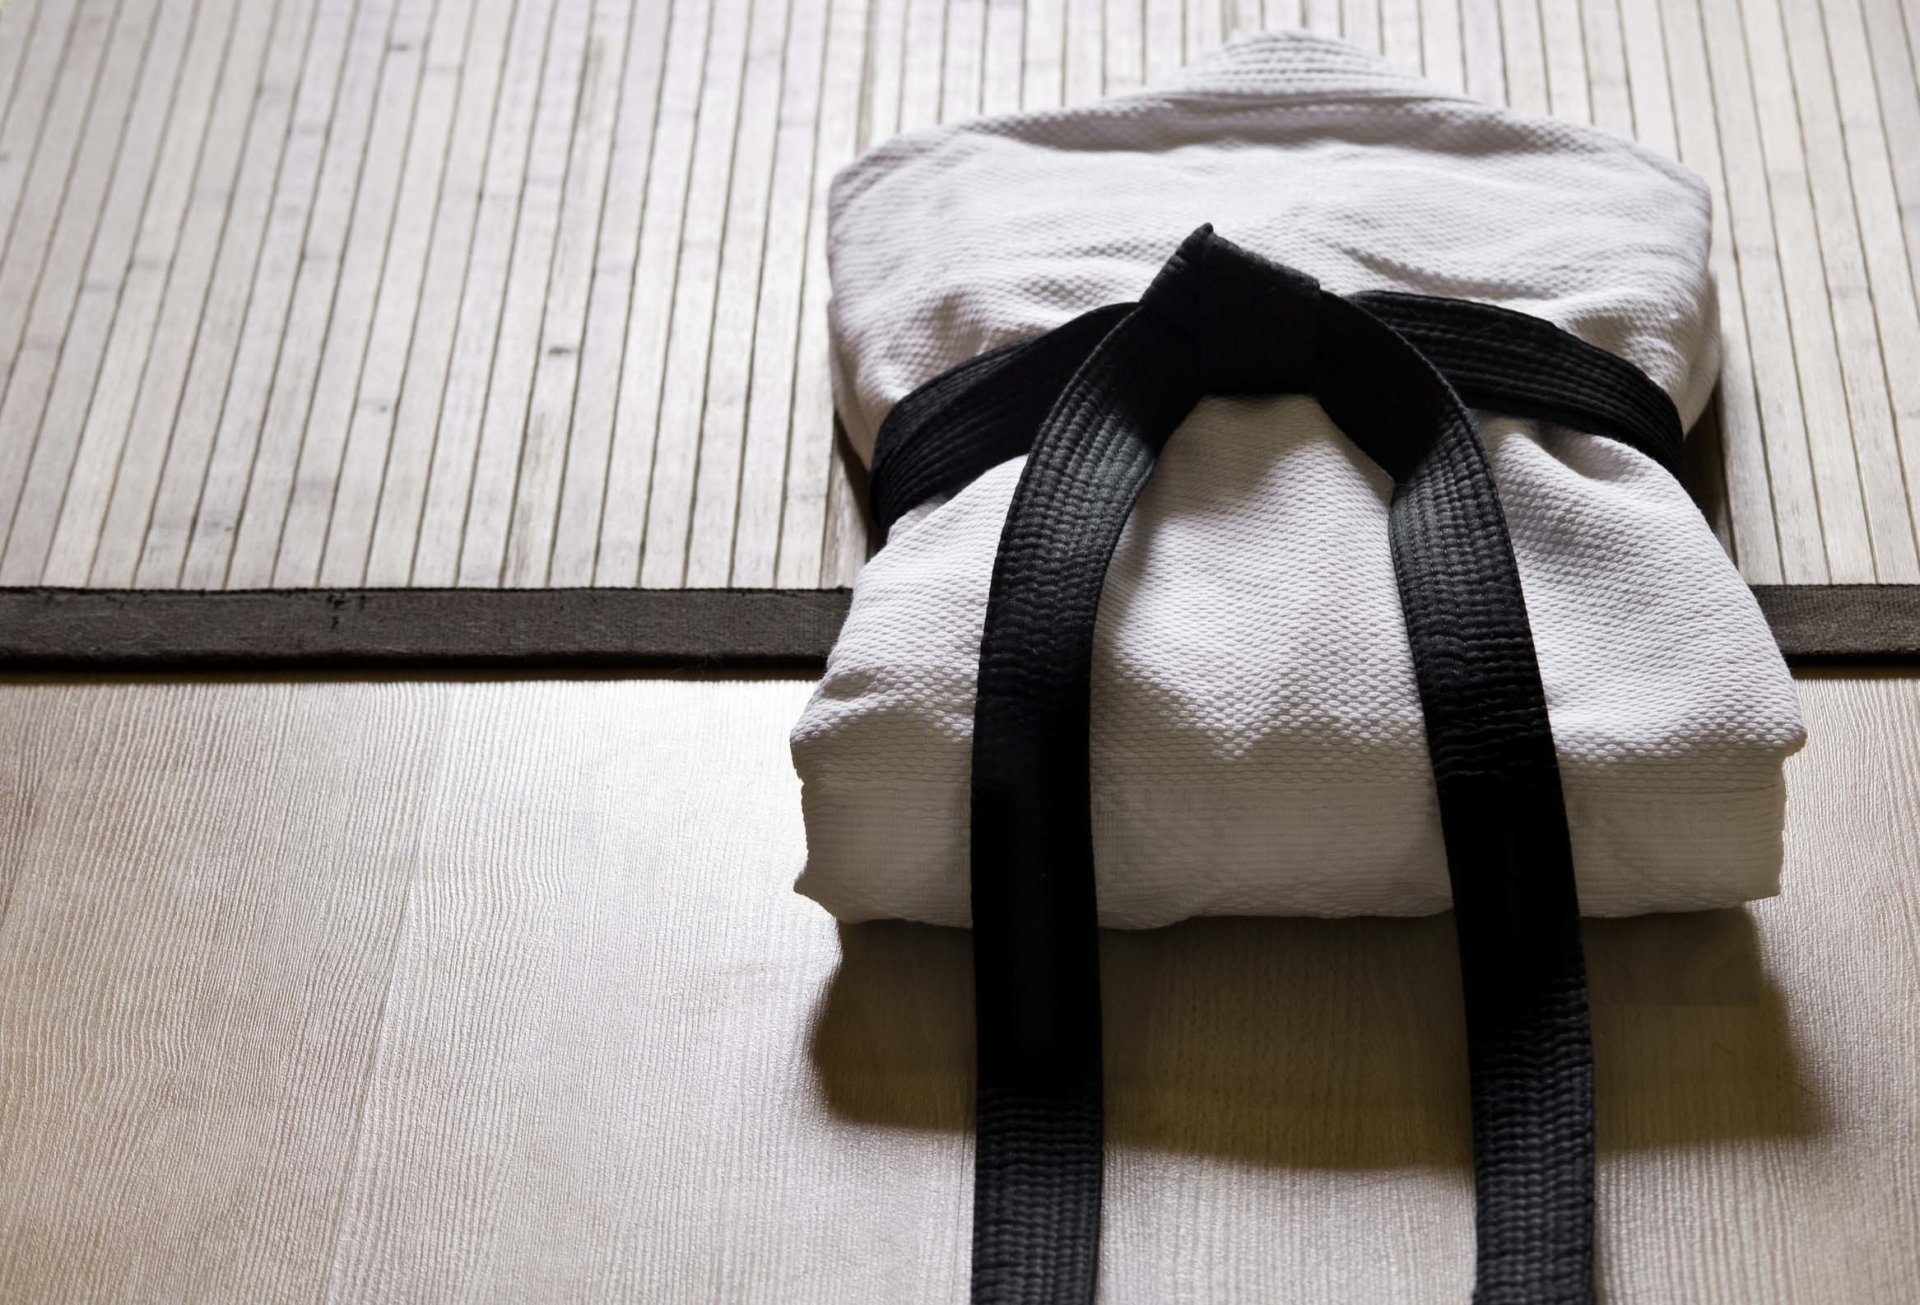 Le club de judo Varengevillais – modification des horaires